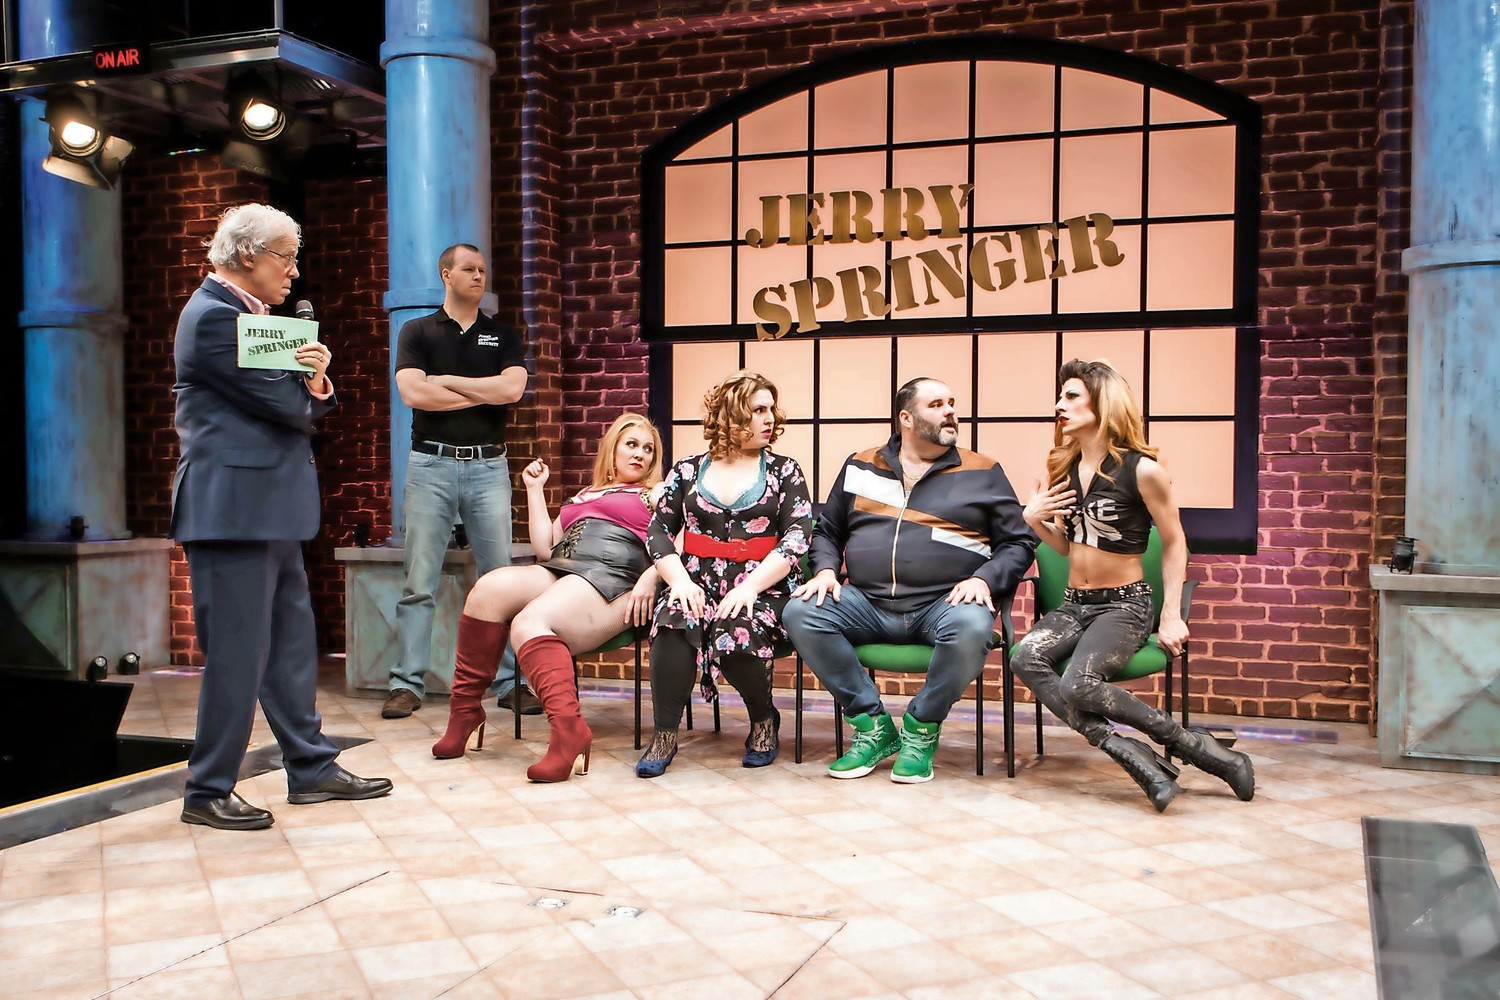 Terrence Mann, left, takes on the persona of shock talk show host in 'Jerry Springer – The Opera,' recreating the kind of craziness found on the television show with actors that include, from left, Billy Hepfinger, Beth Kirkpatrick, Florrie Bagel, Luke Grooms and Sean Patrick Doyle.